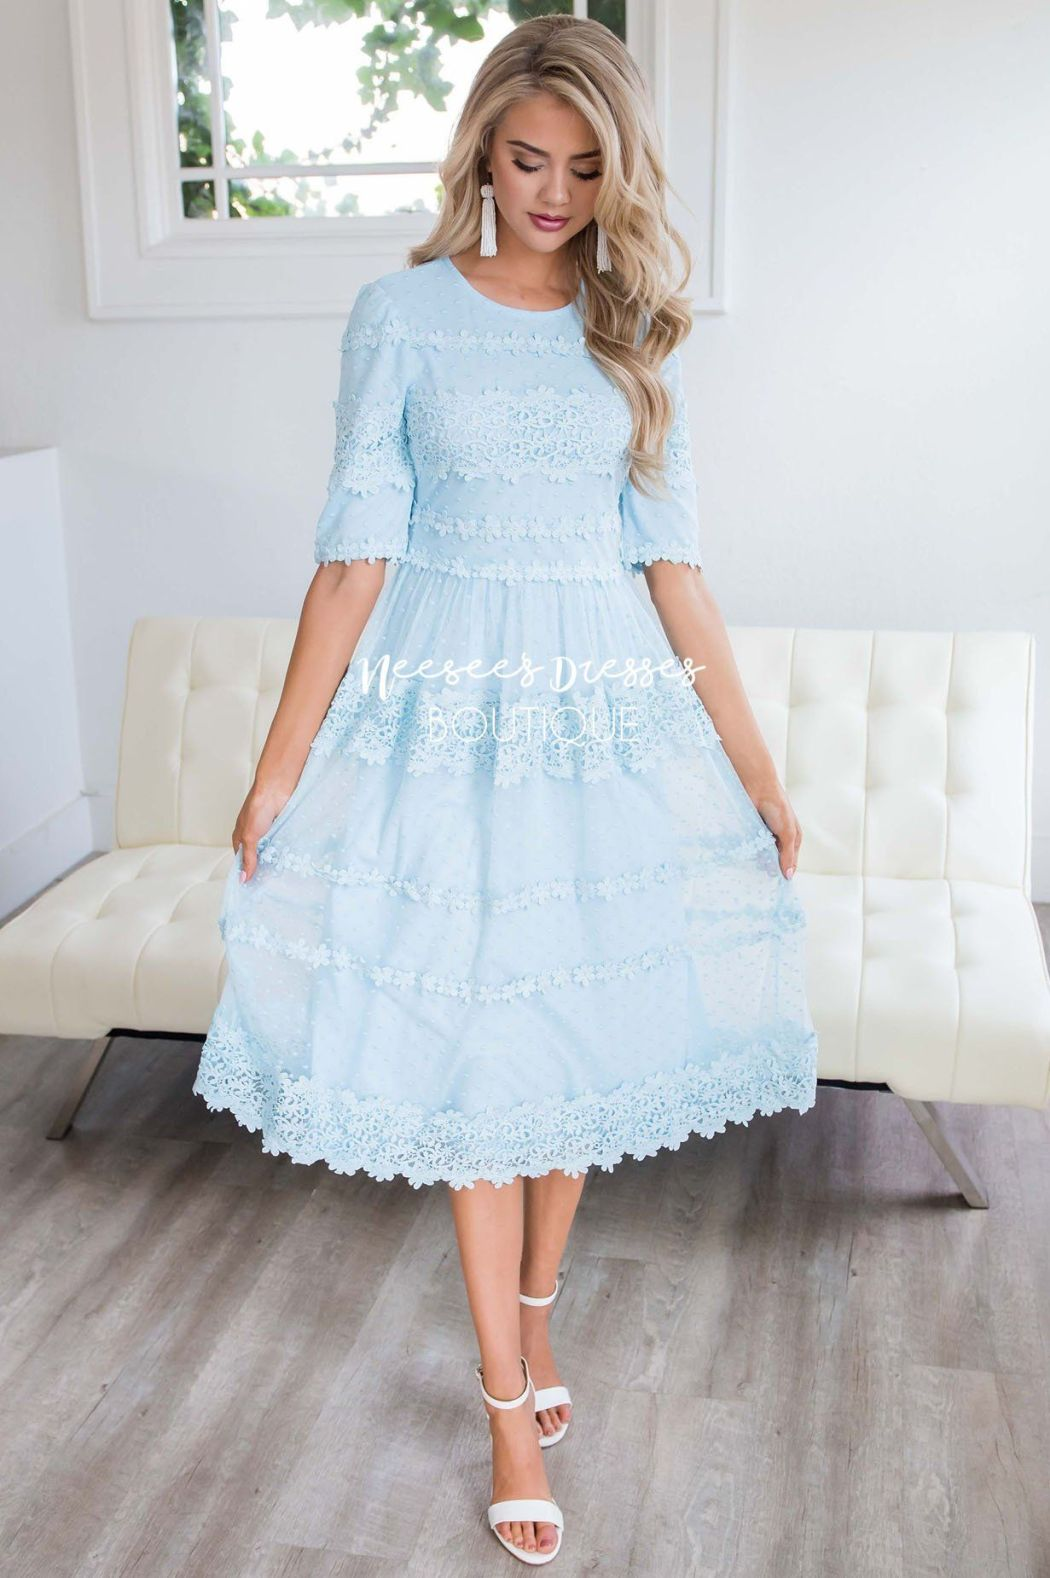 Neesees Dresses Modest Pale Blue Lace Dress